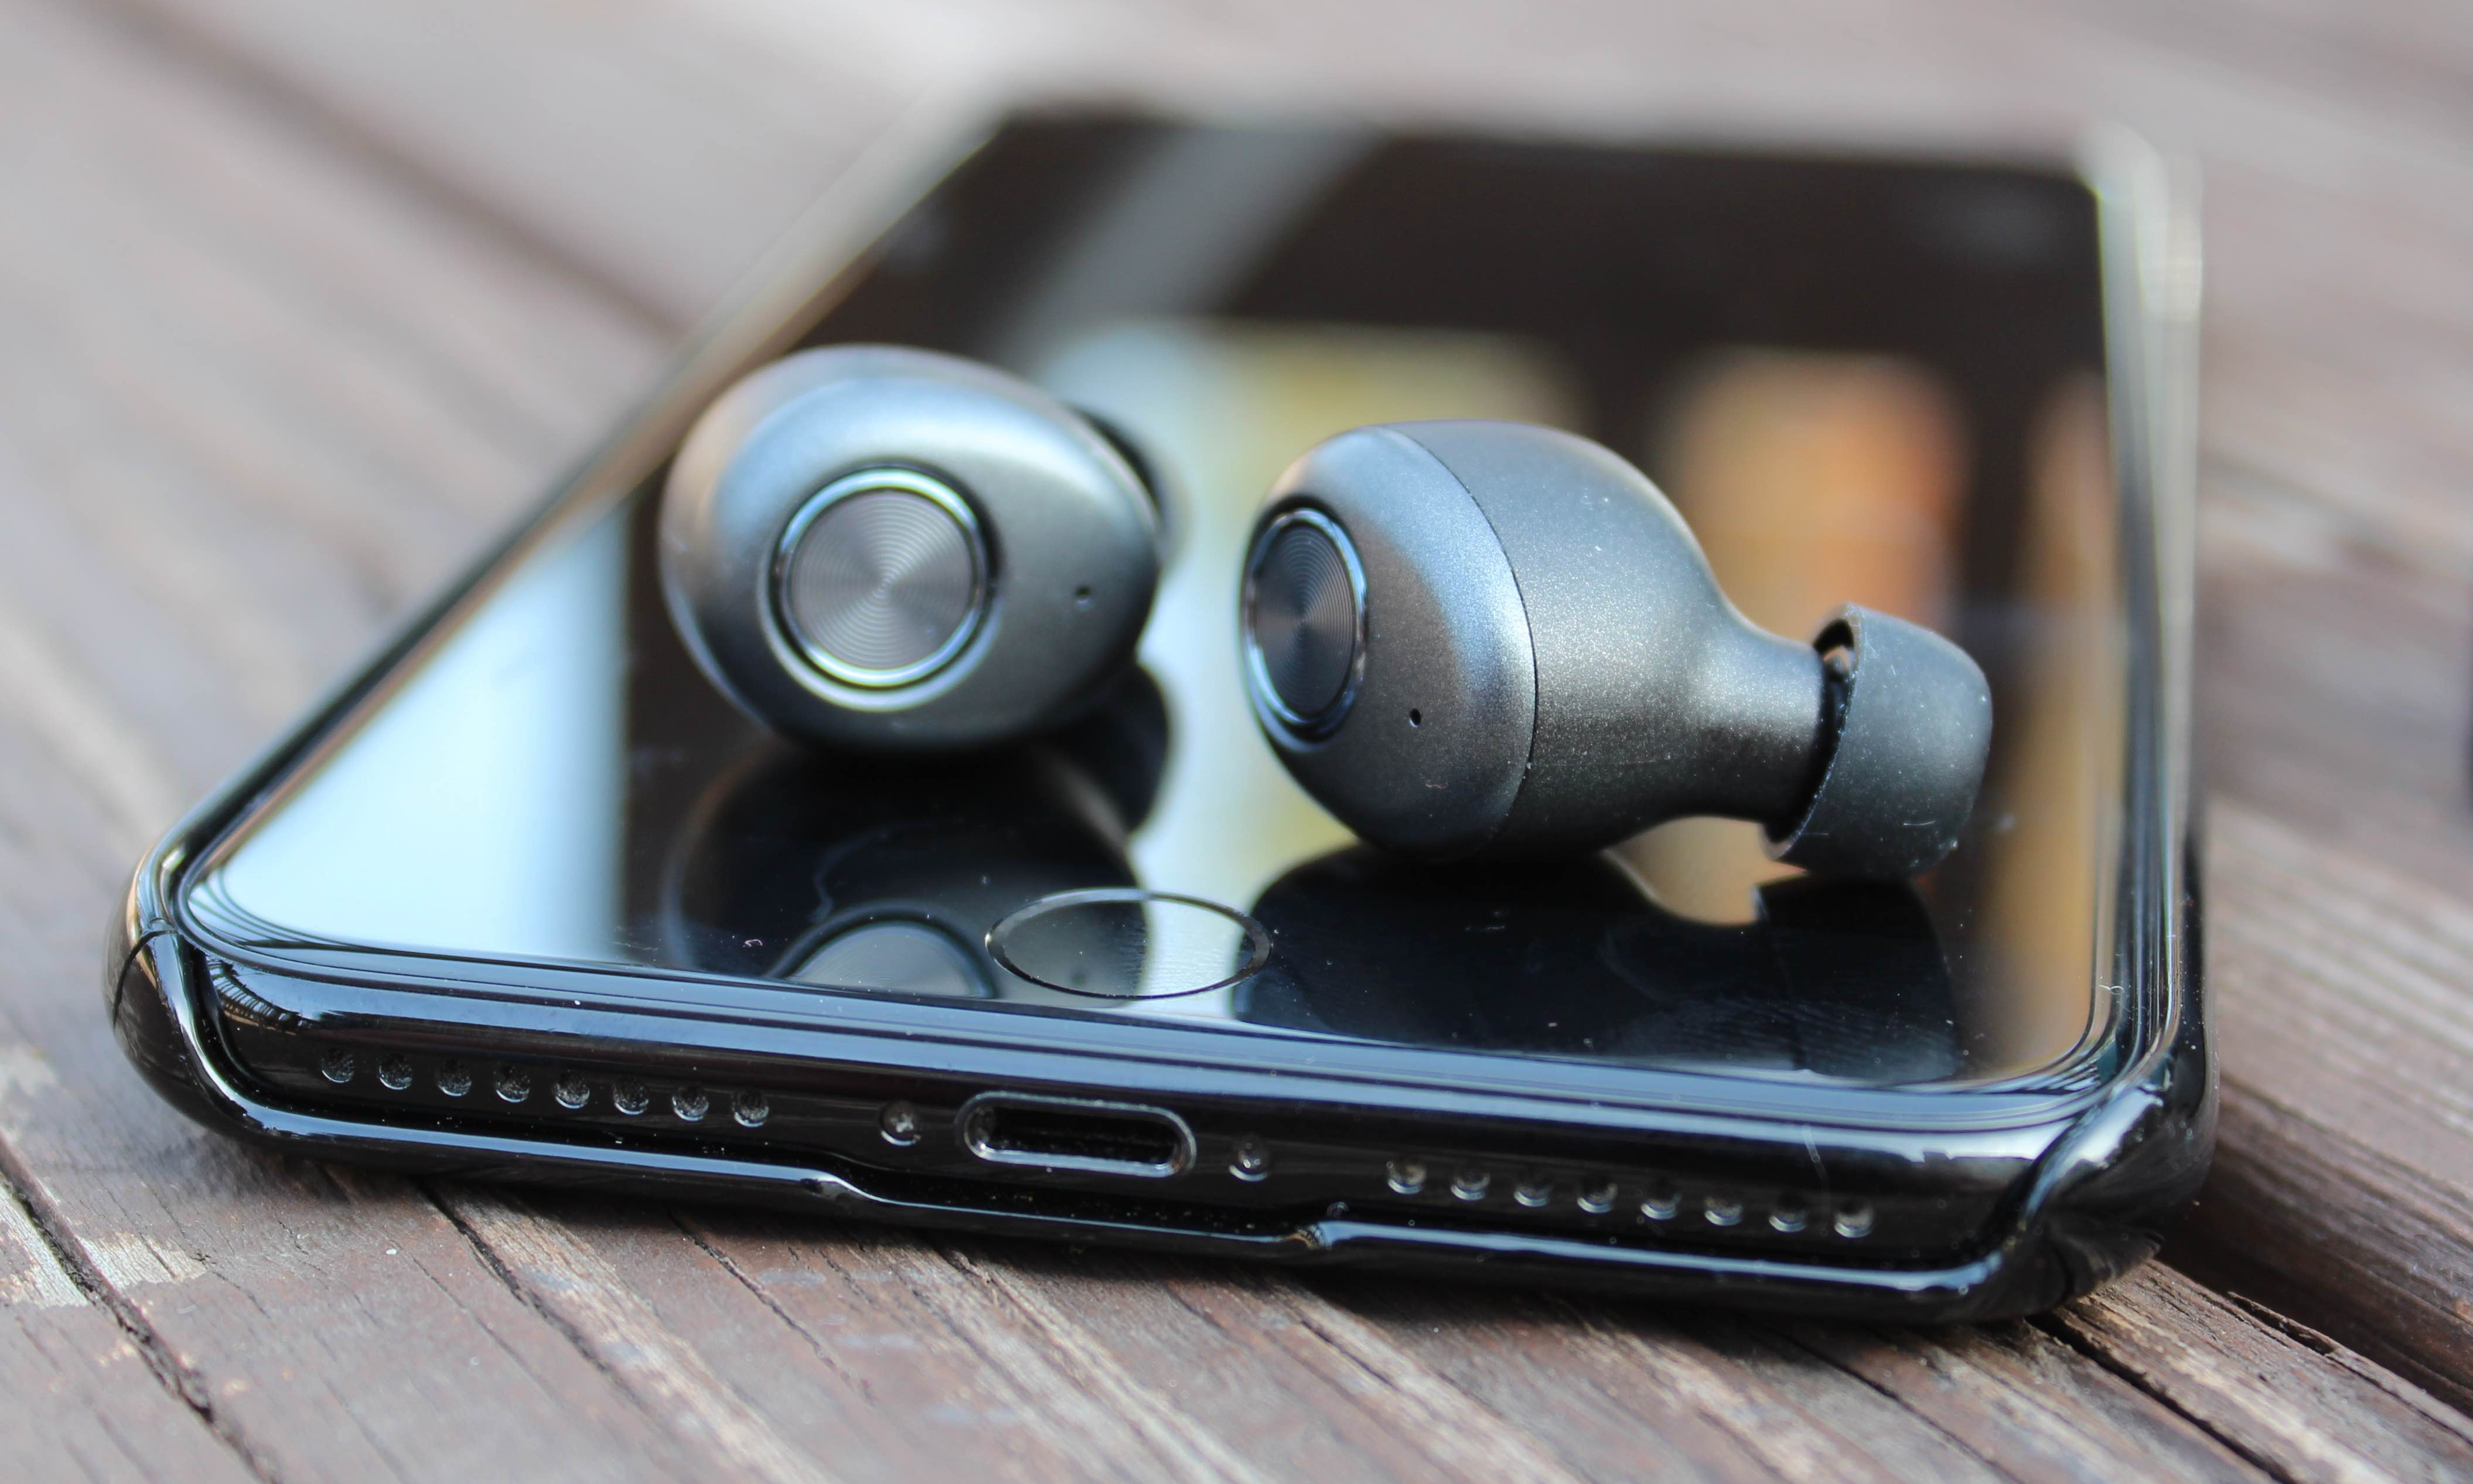 Review: Smartomi Ace – Affordable, Truly Wireless Earbuds